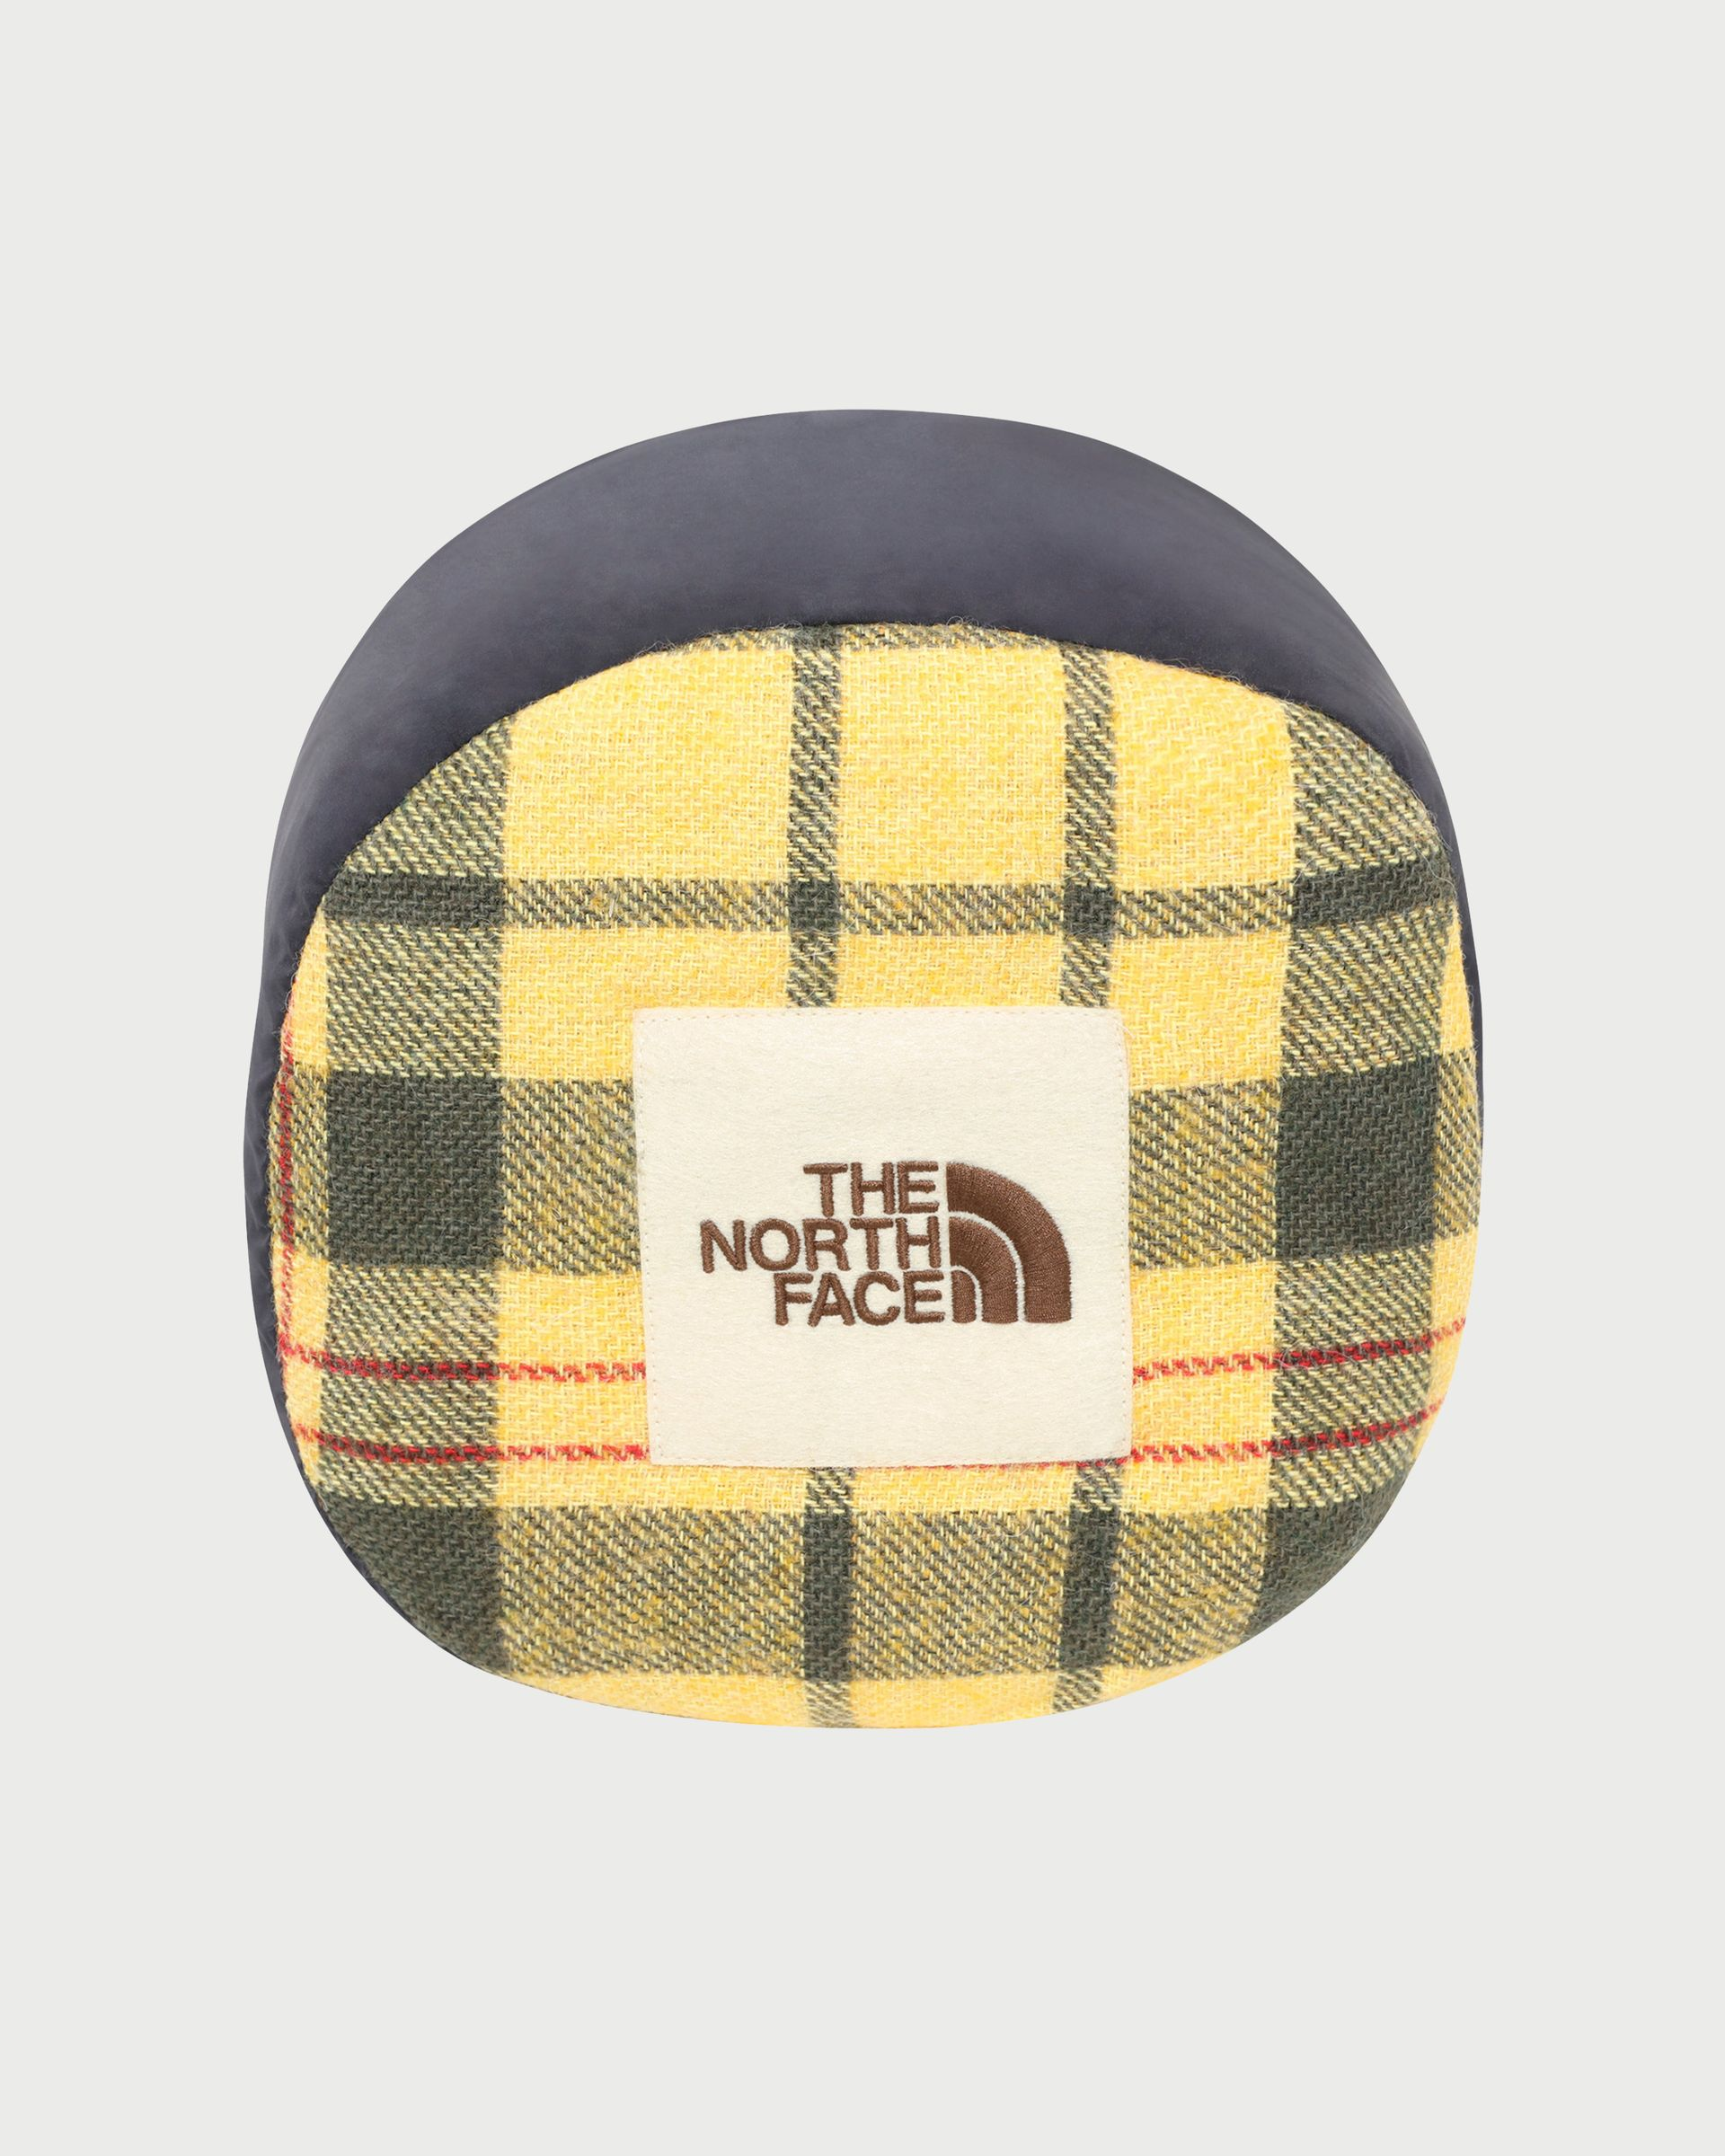 The North Face Brown Label - Insulated Scarf Summer Gold Heritage Unisex - Image 3